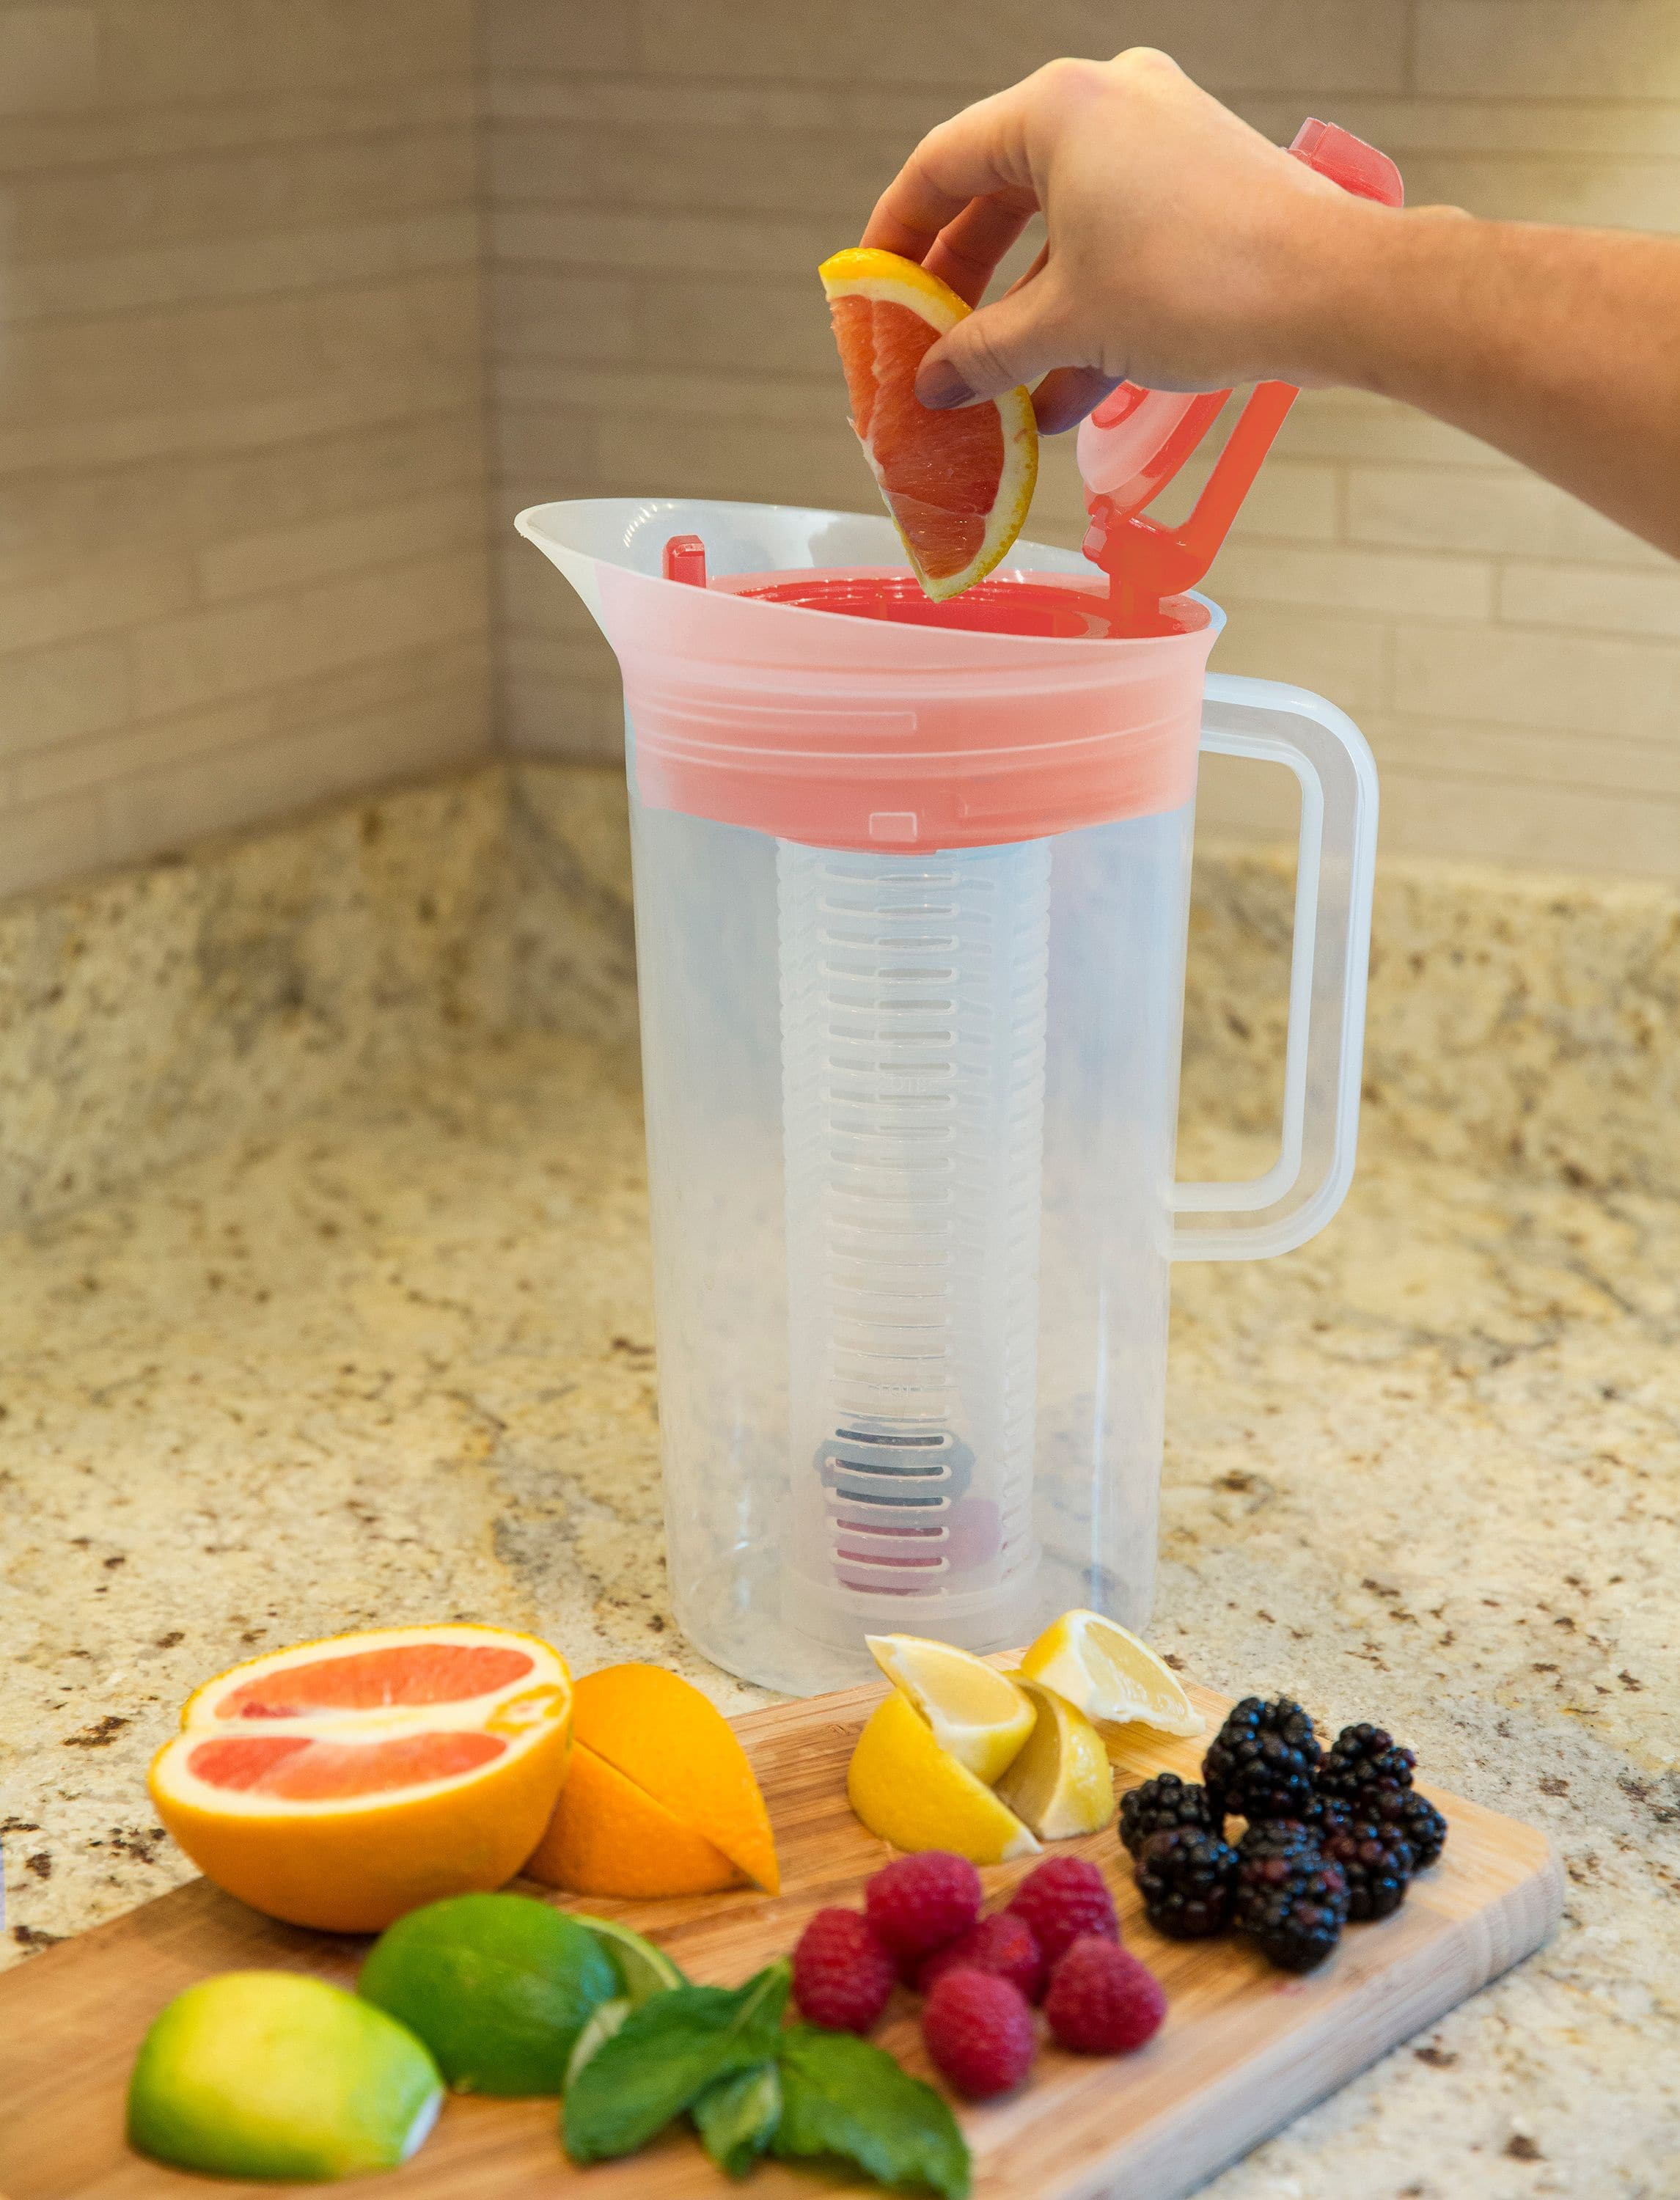 Primula Fruit Infuser Pitcher, Red - $7.86